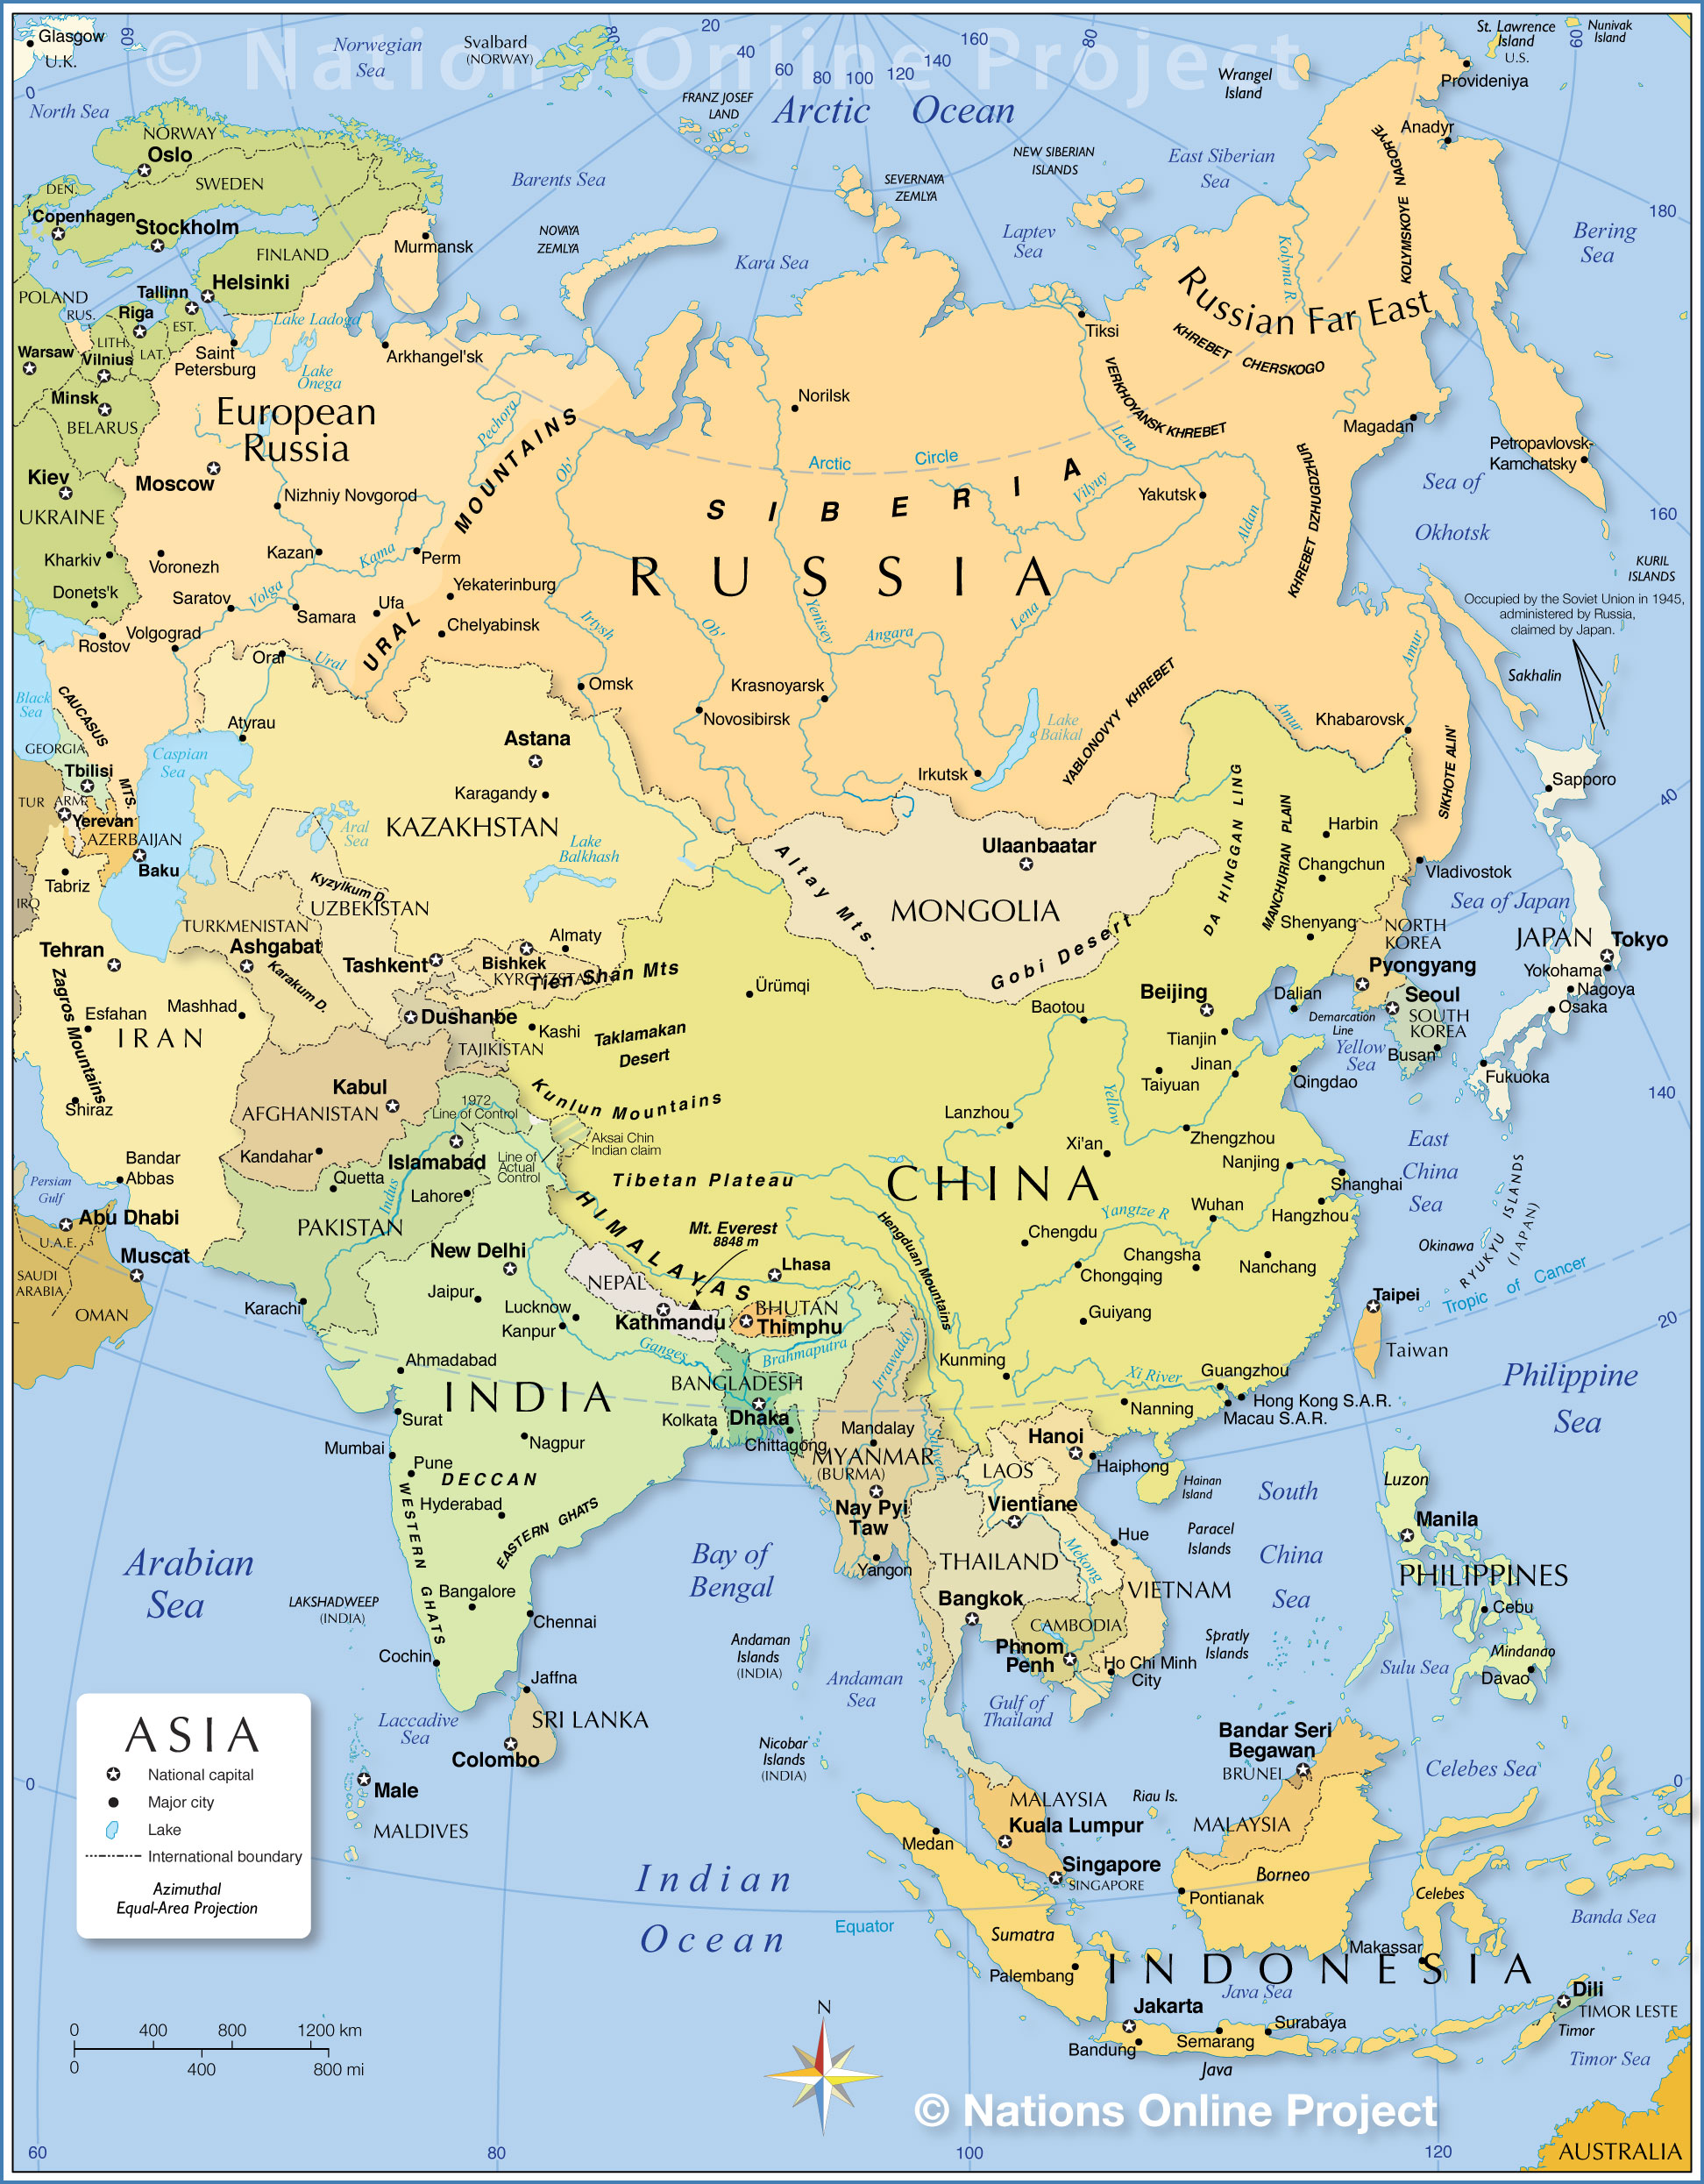 Asia Bodies Of Water Map : bodies, water, Political, Nations, Online, Project